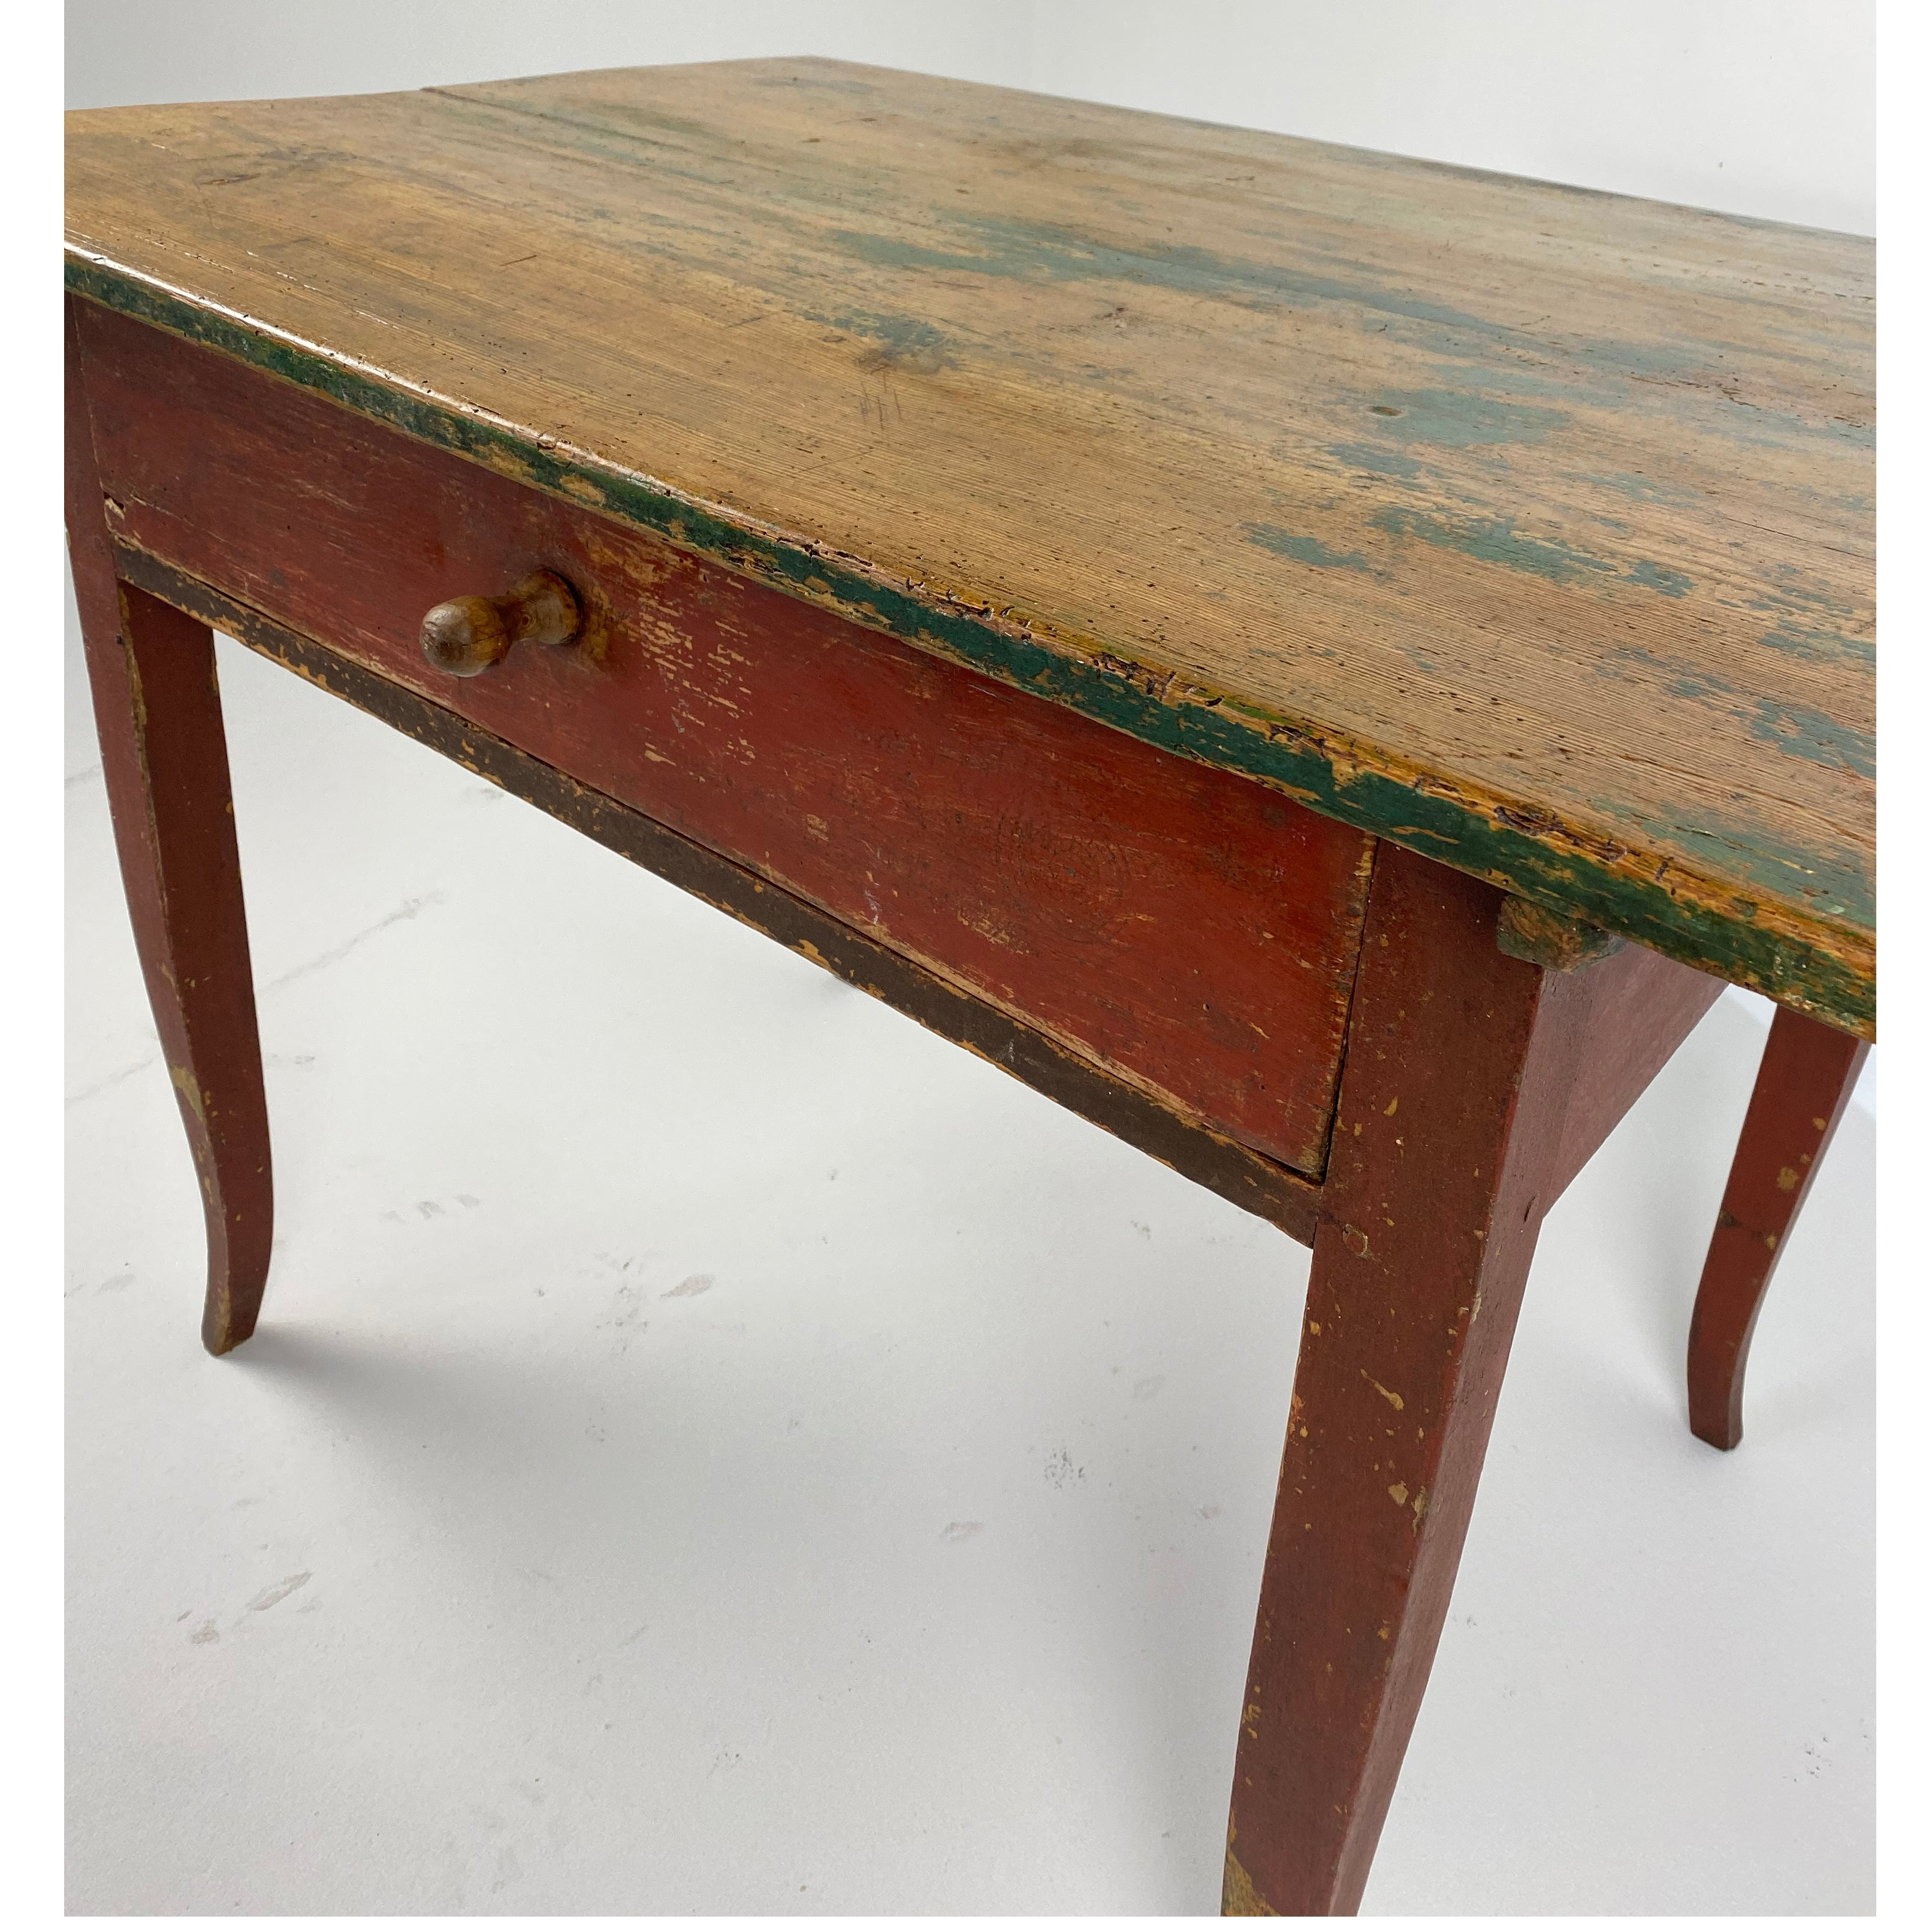 Antique Painted Green & Red Table c1890